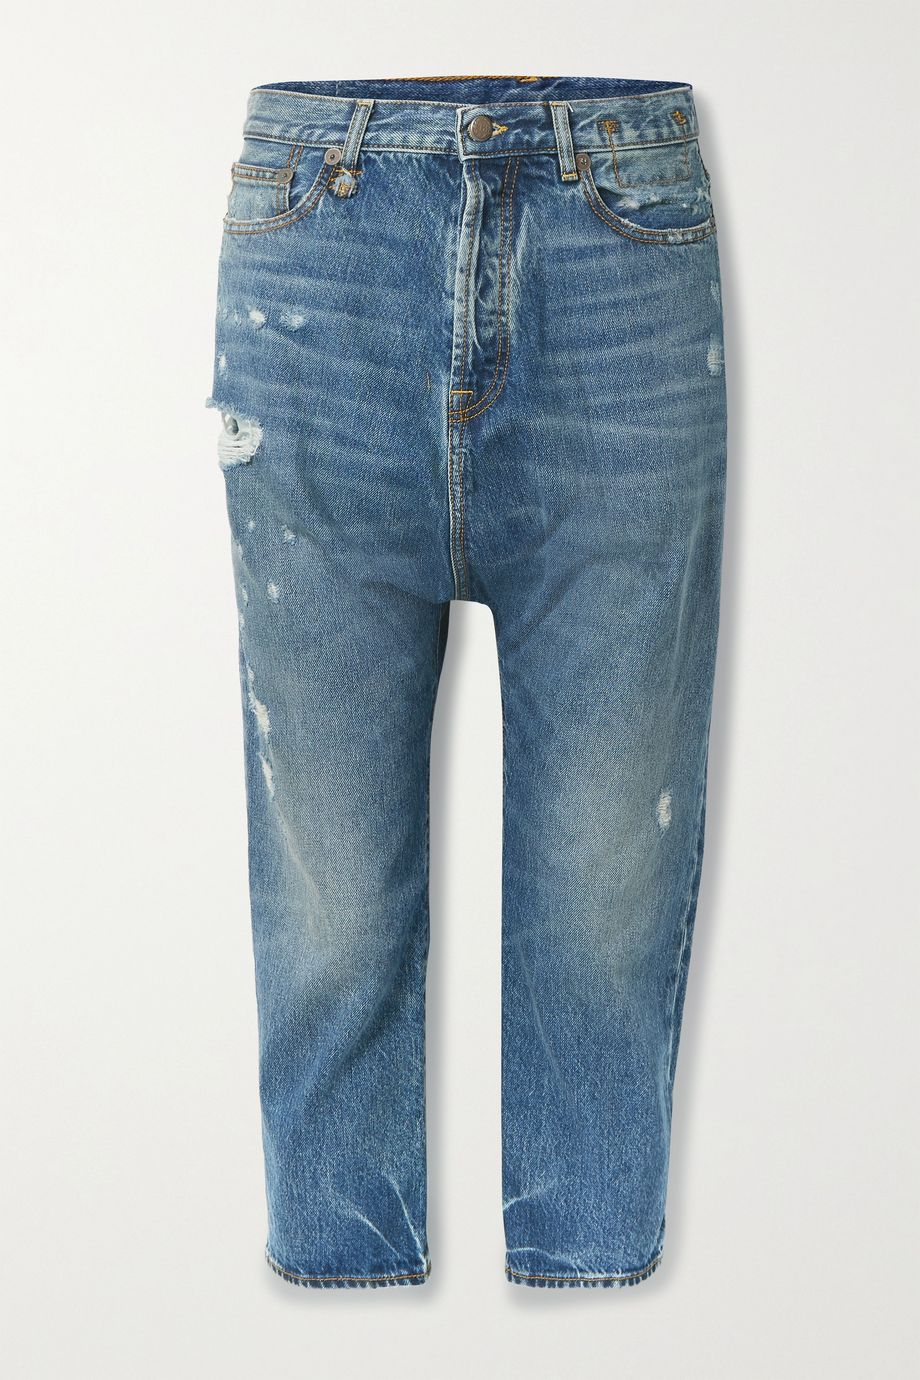 R13 Tailored Drop distressed low-rise boyfriend jeans